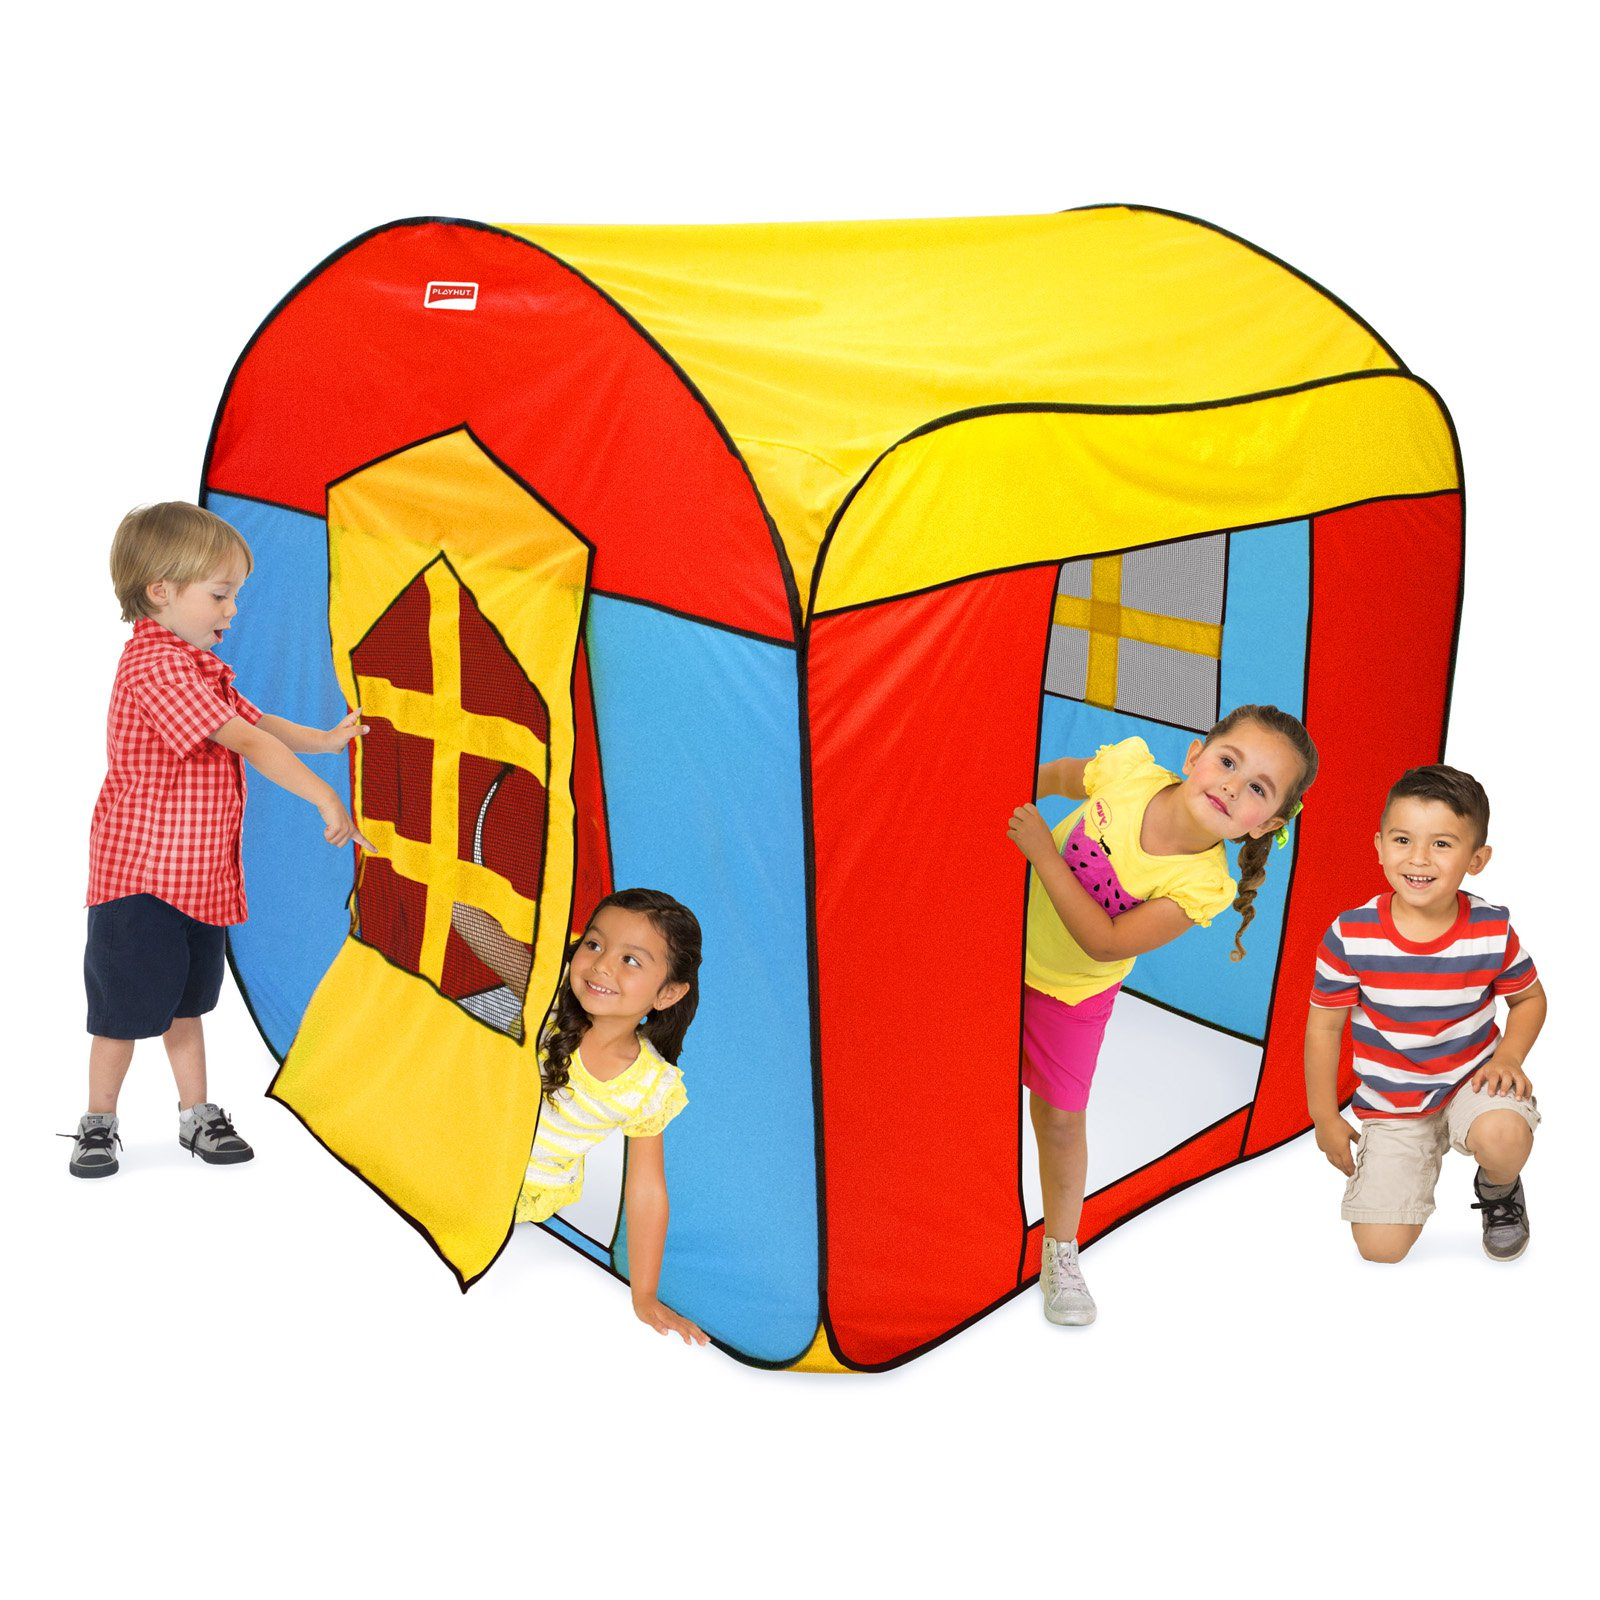 Playhut Mega House Play Tent by Playhut